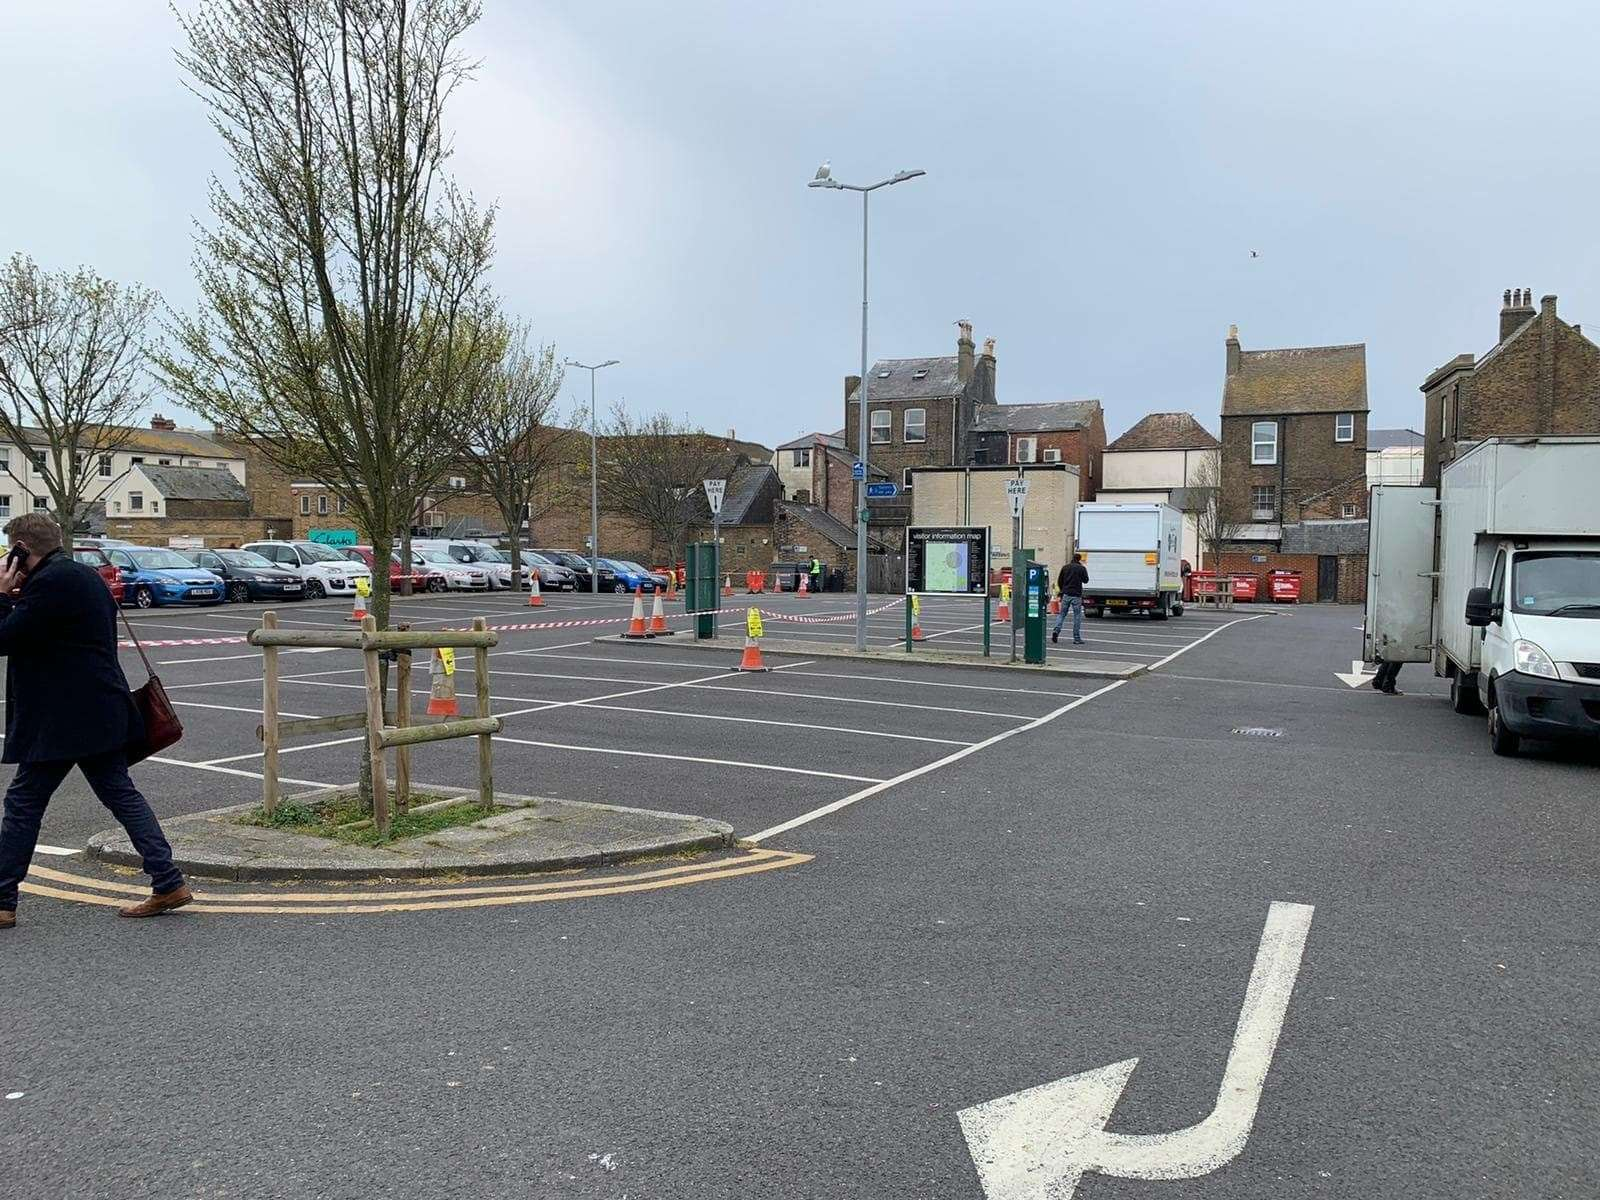 Middle Street Car Park is mostly empty to allow the crew and actors space to film